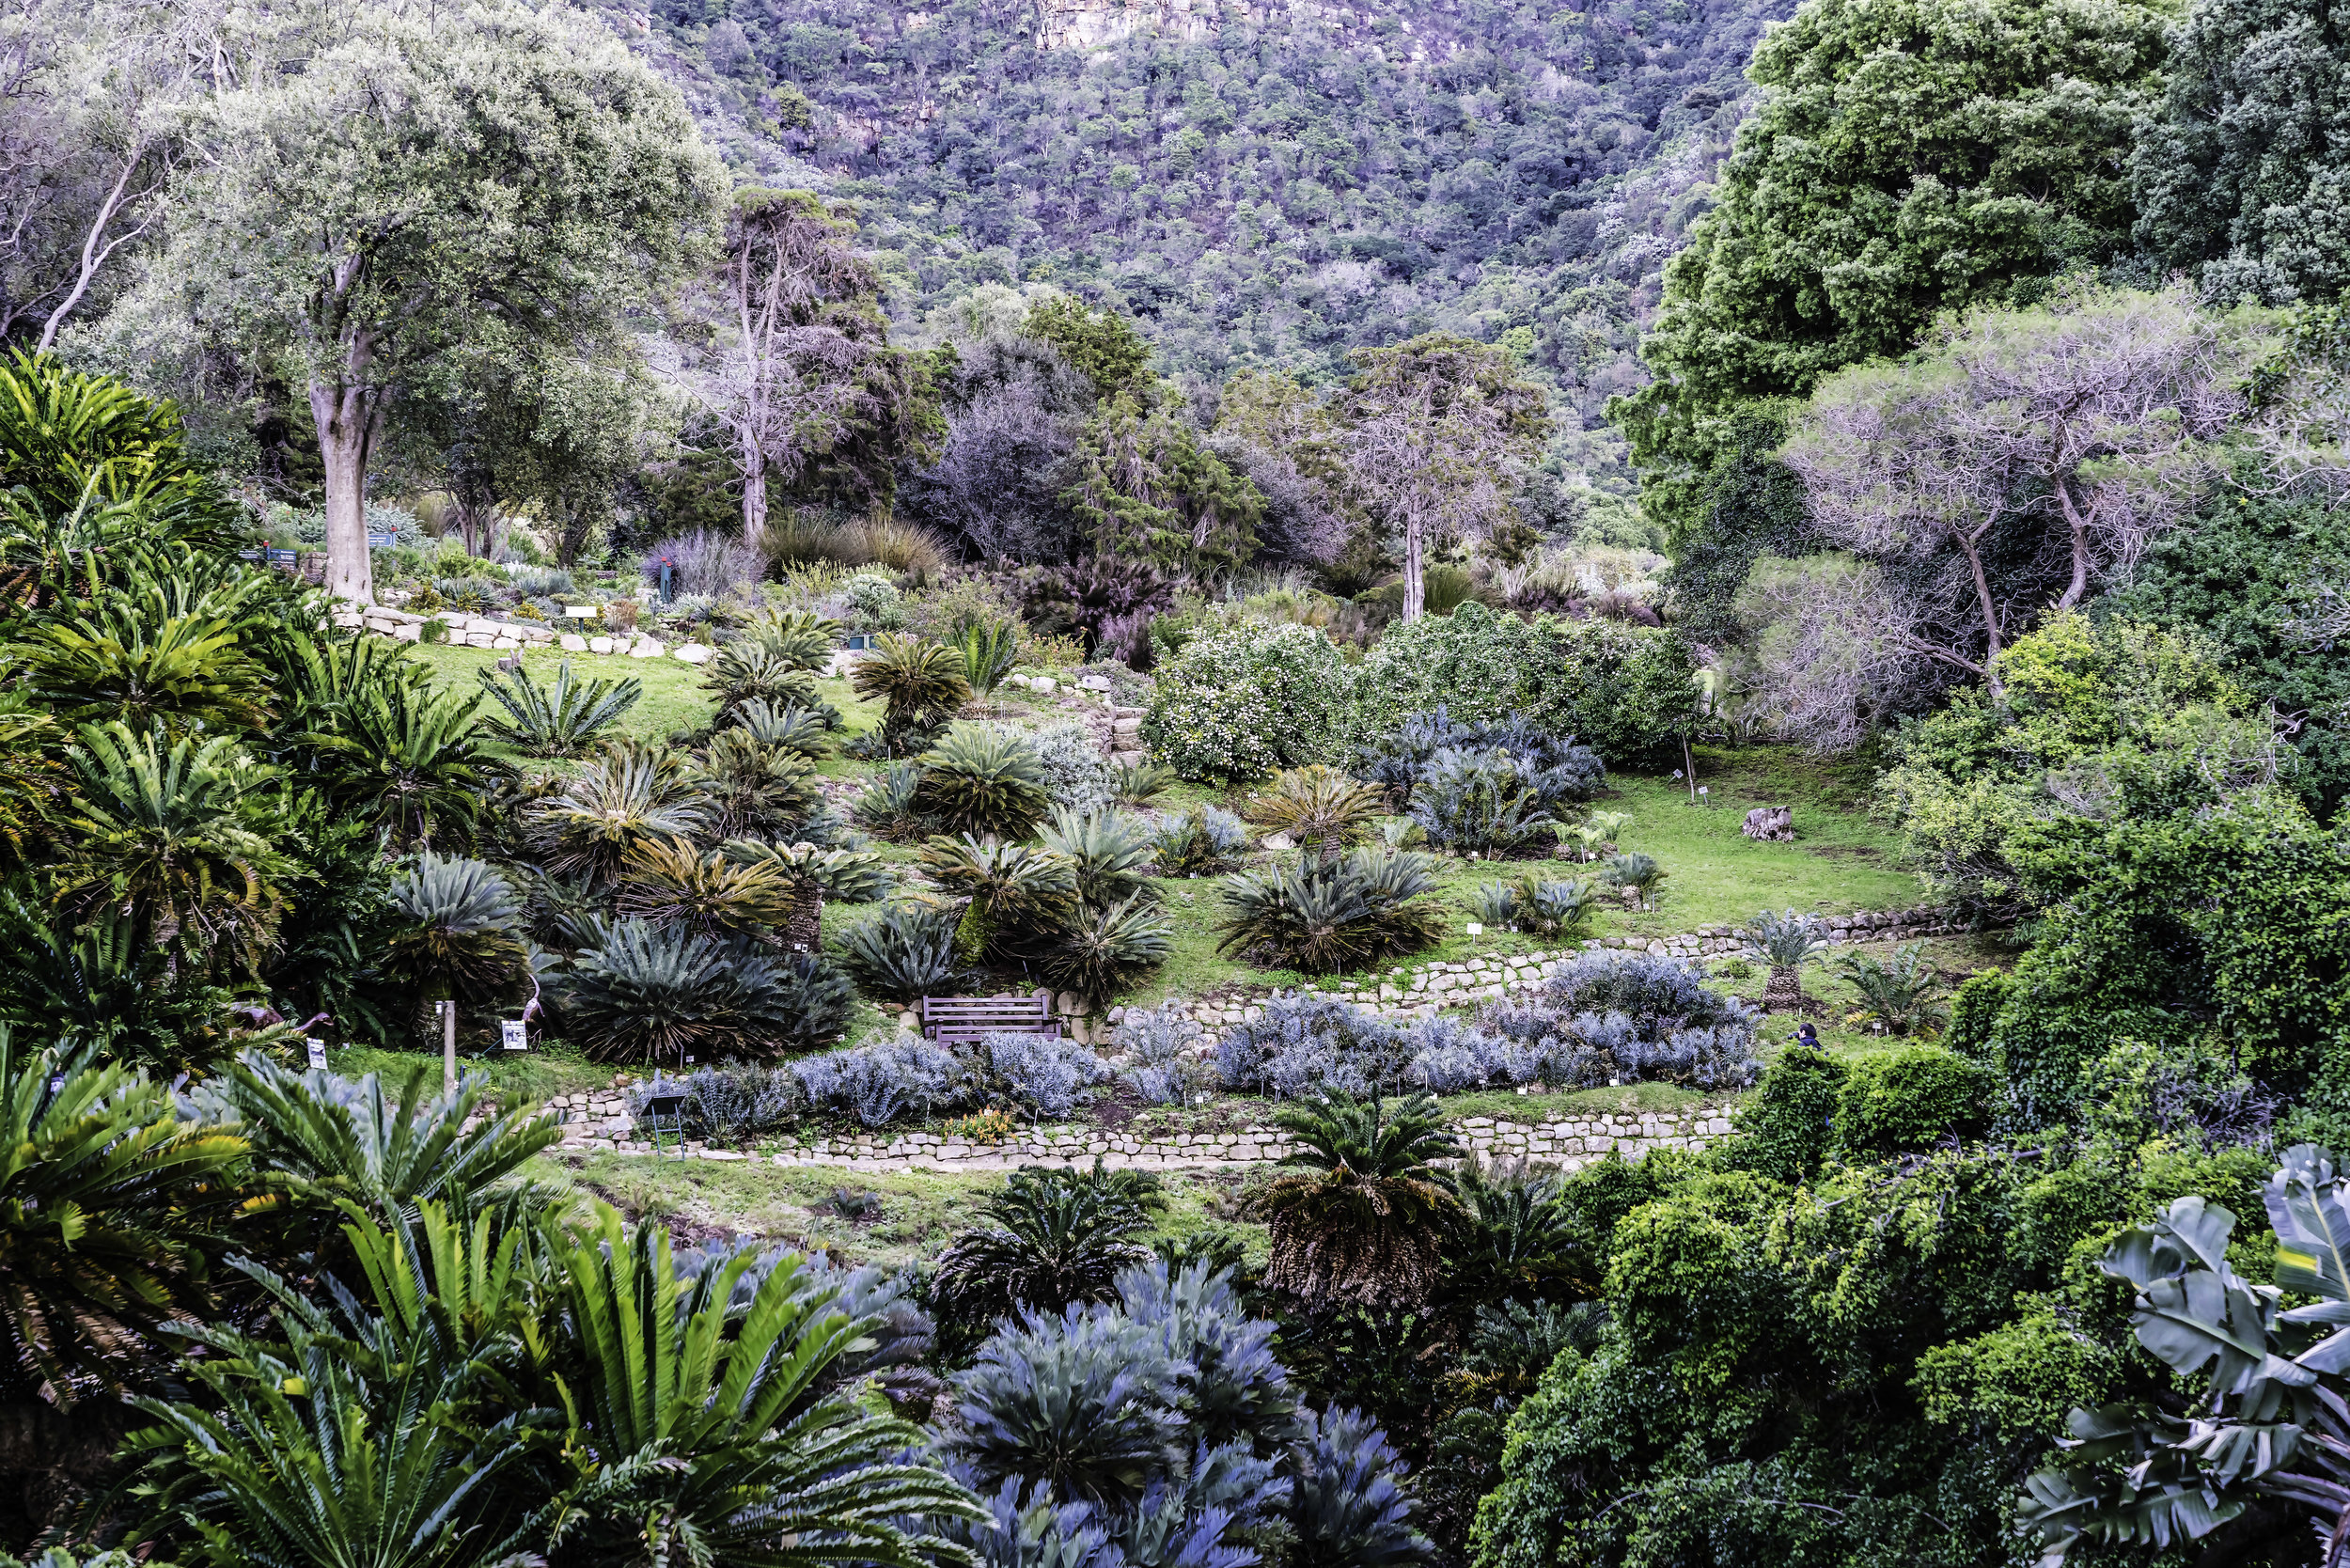 Kirstenbosch National Botanical Gardens, Cape Town SA